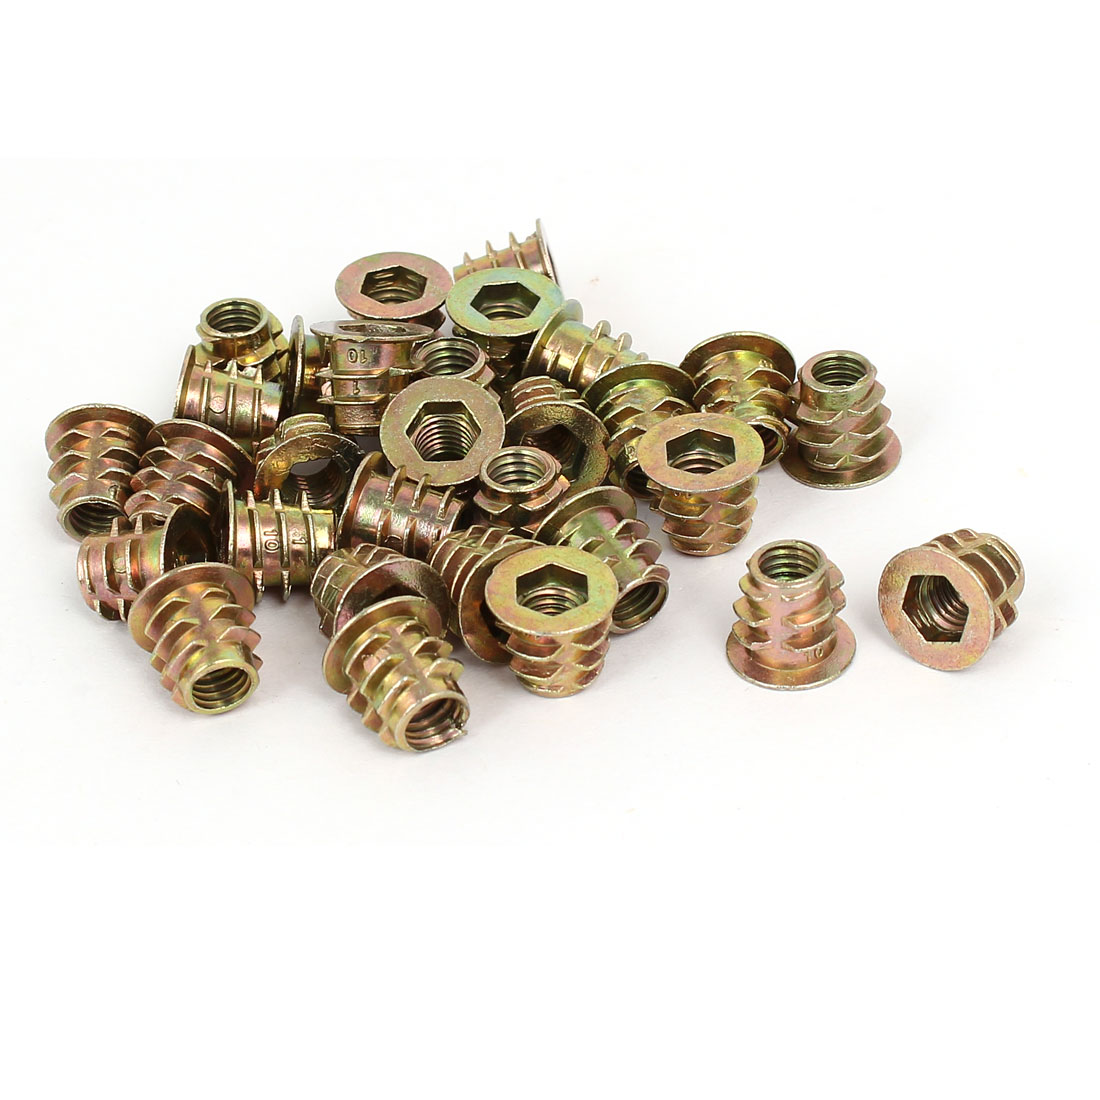 M6 x 10mm Hex Socket Head Insert Screws E-Nuts Furniture Fittings 30pcs